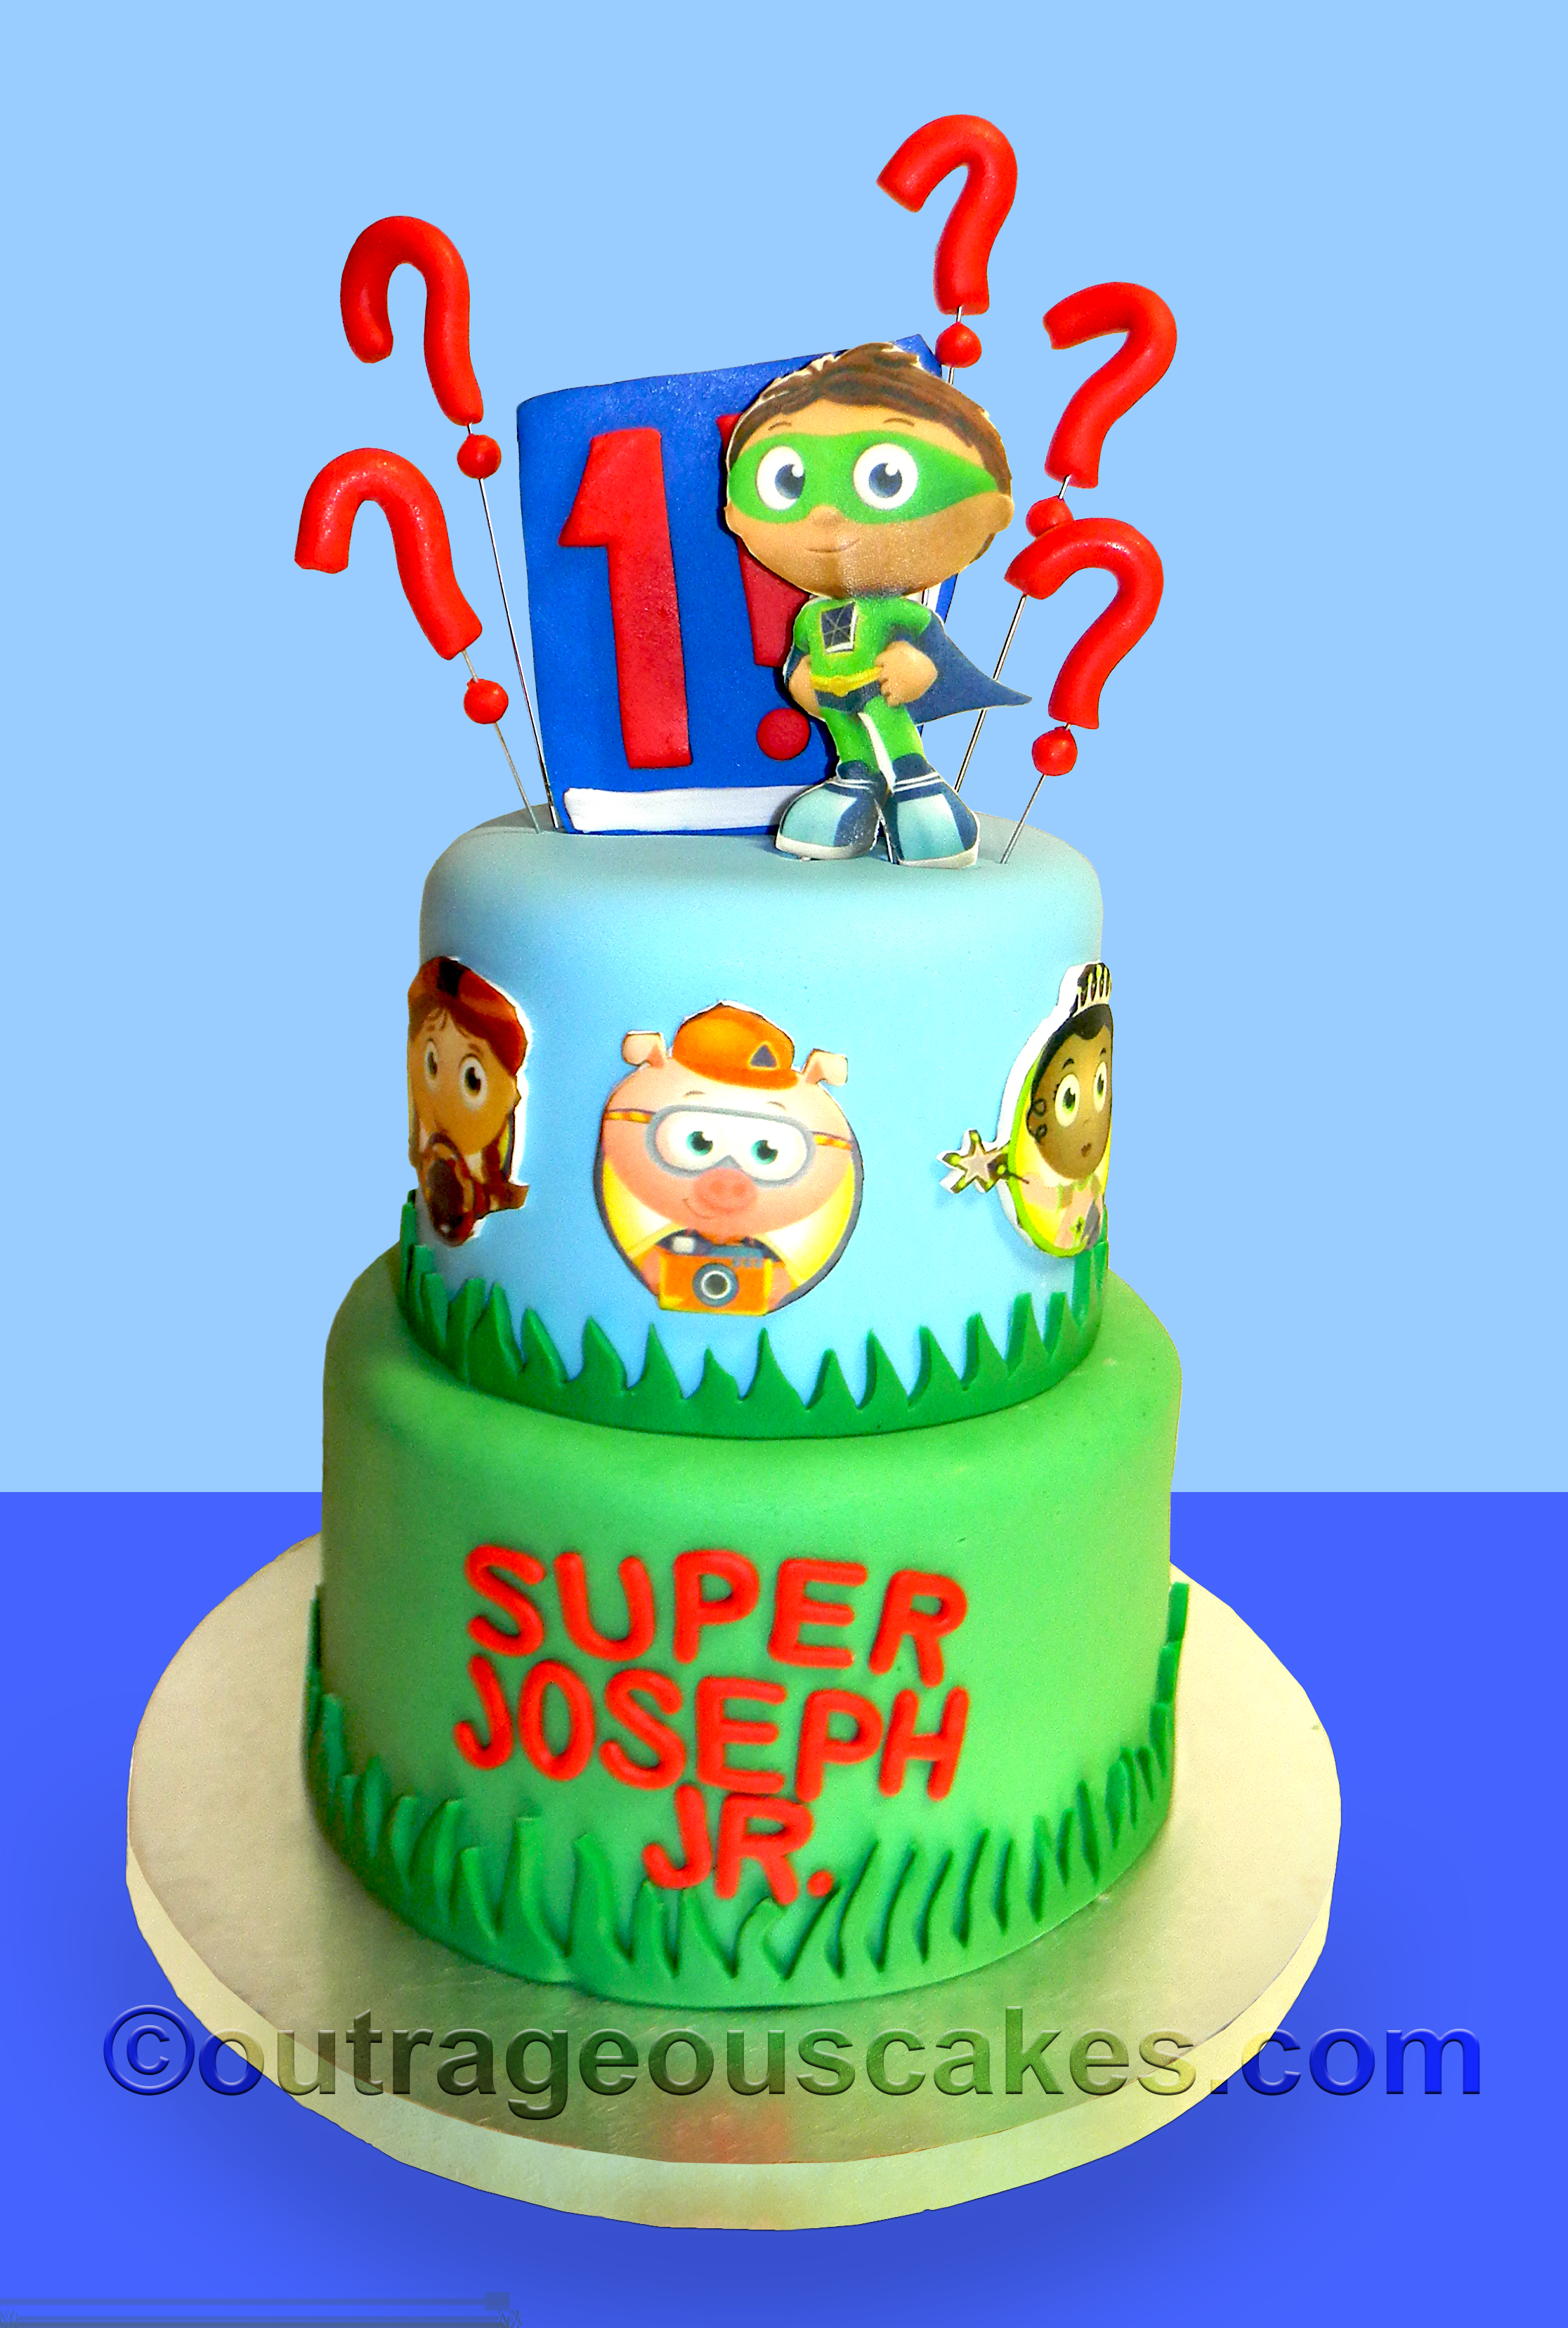 Oc Website Two Super Y Cake